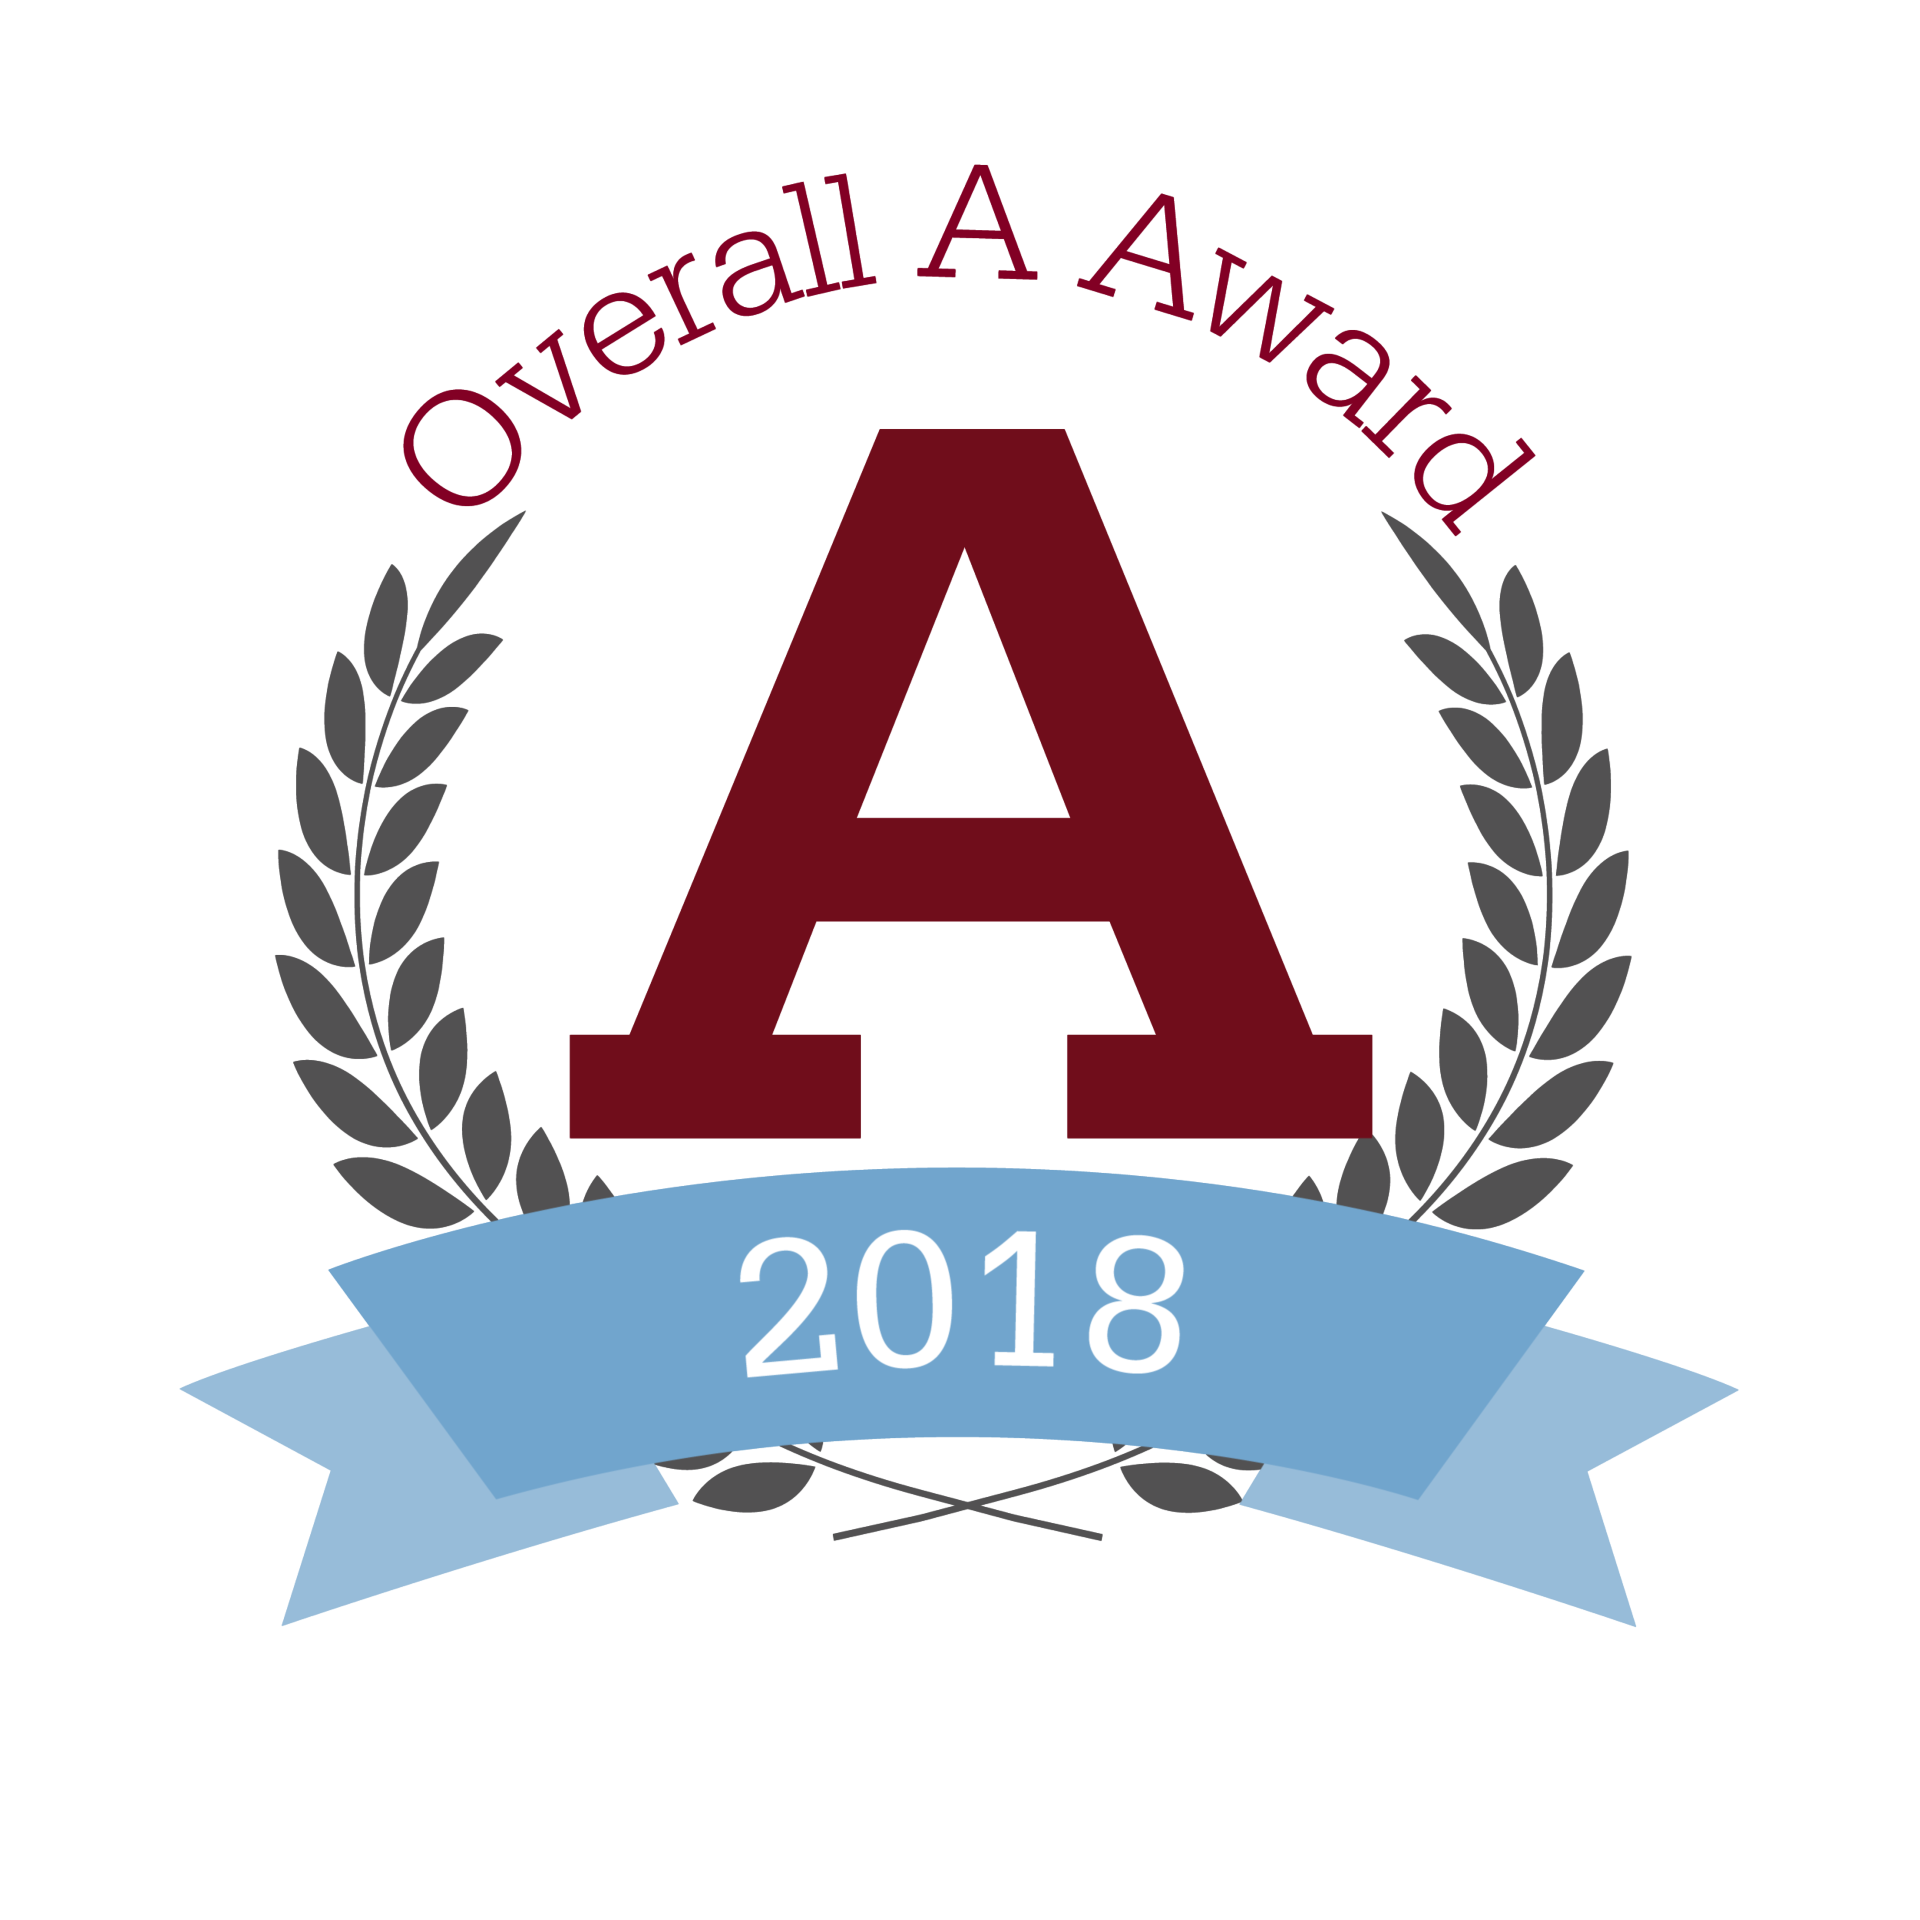 Overall A Award Graphic